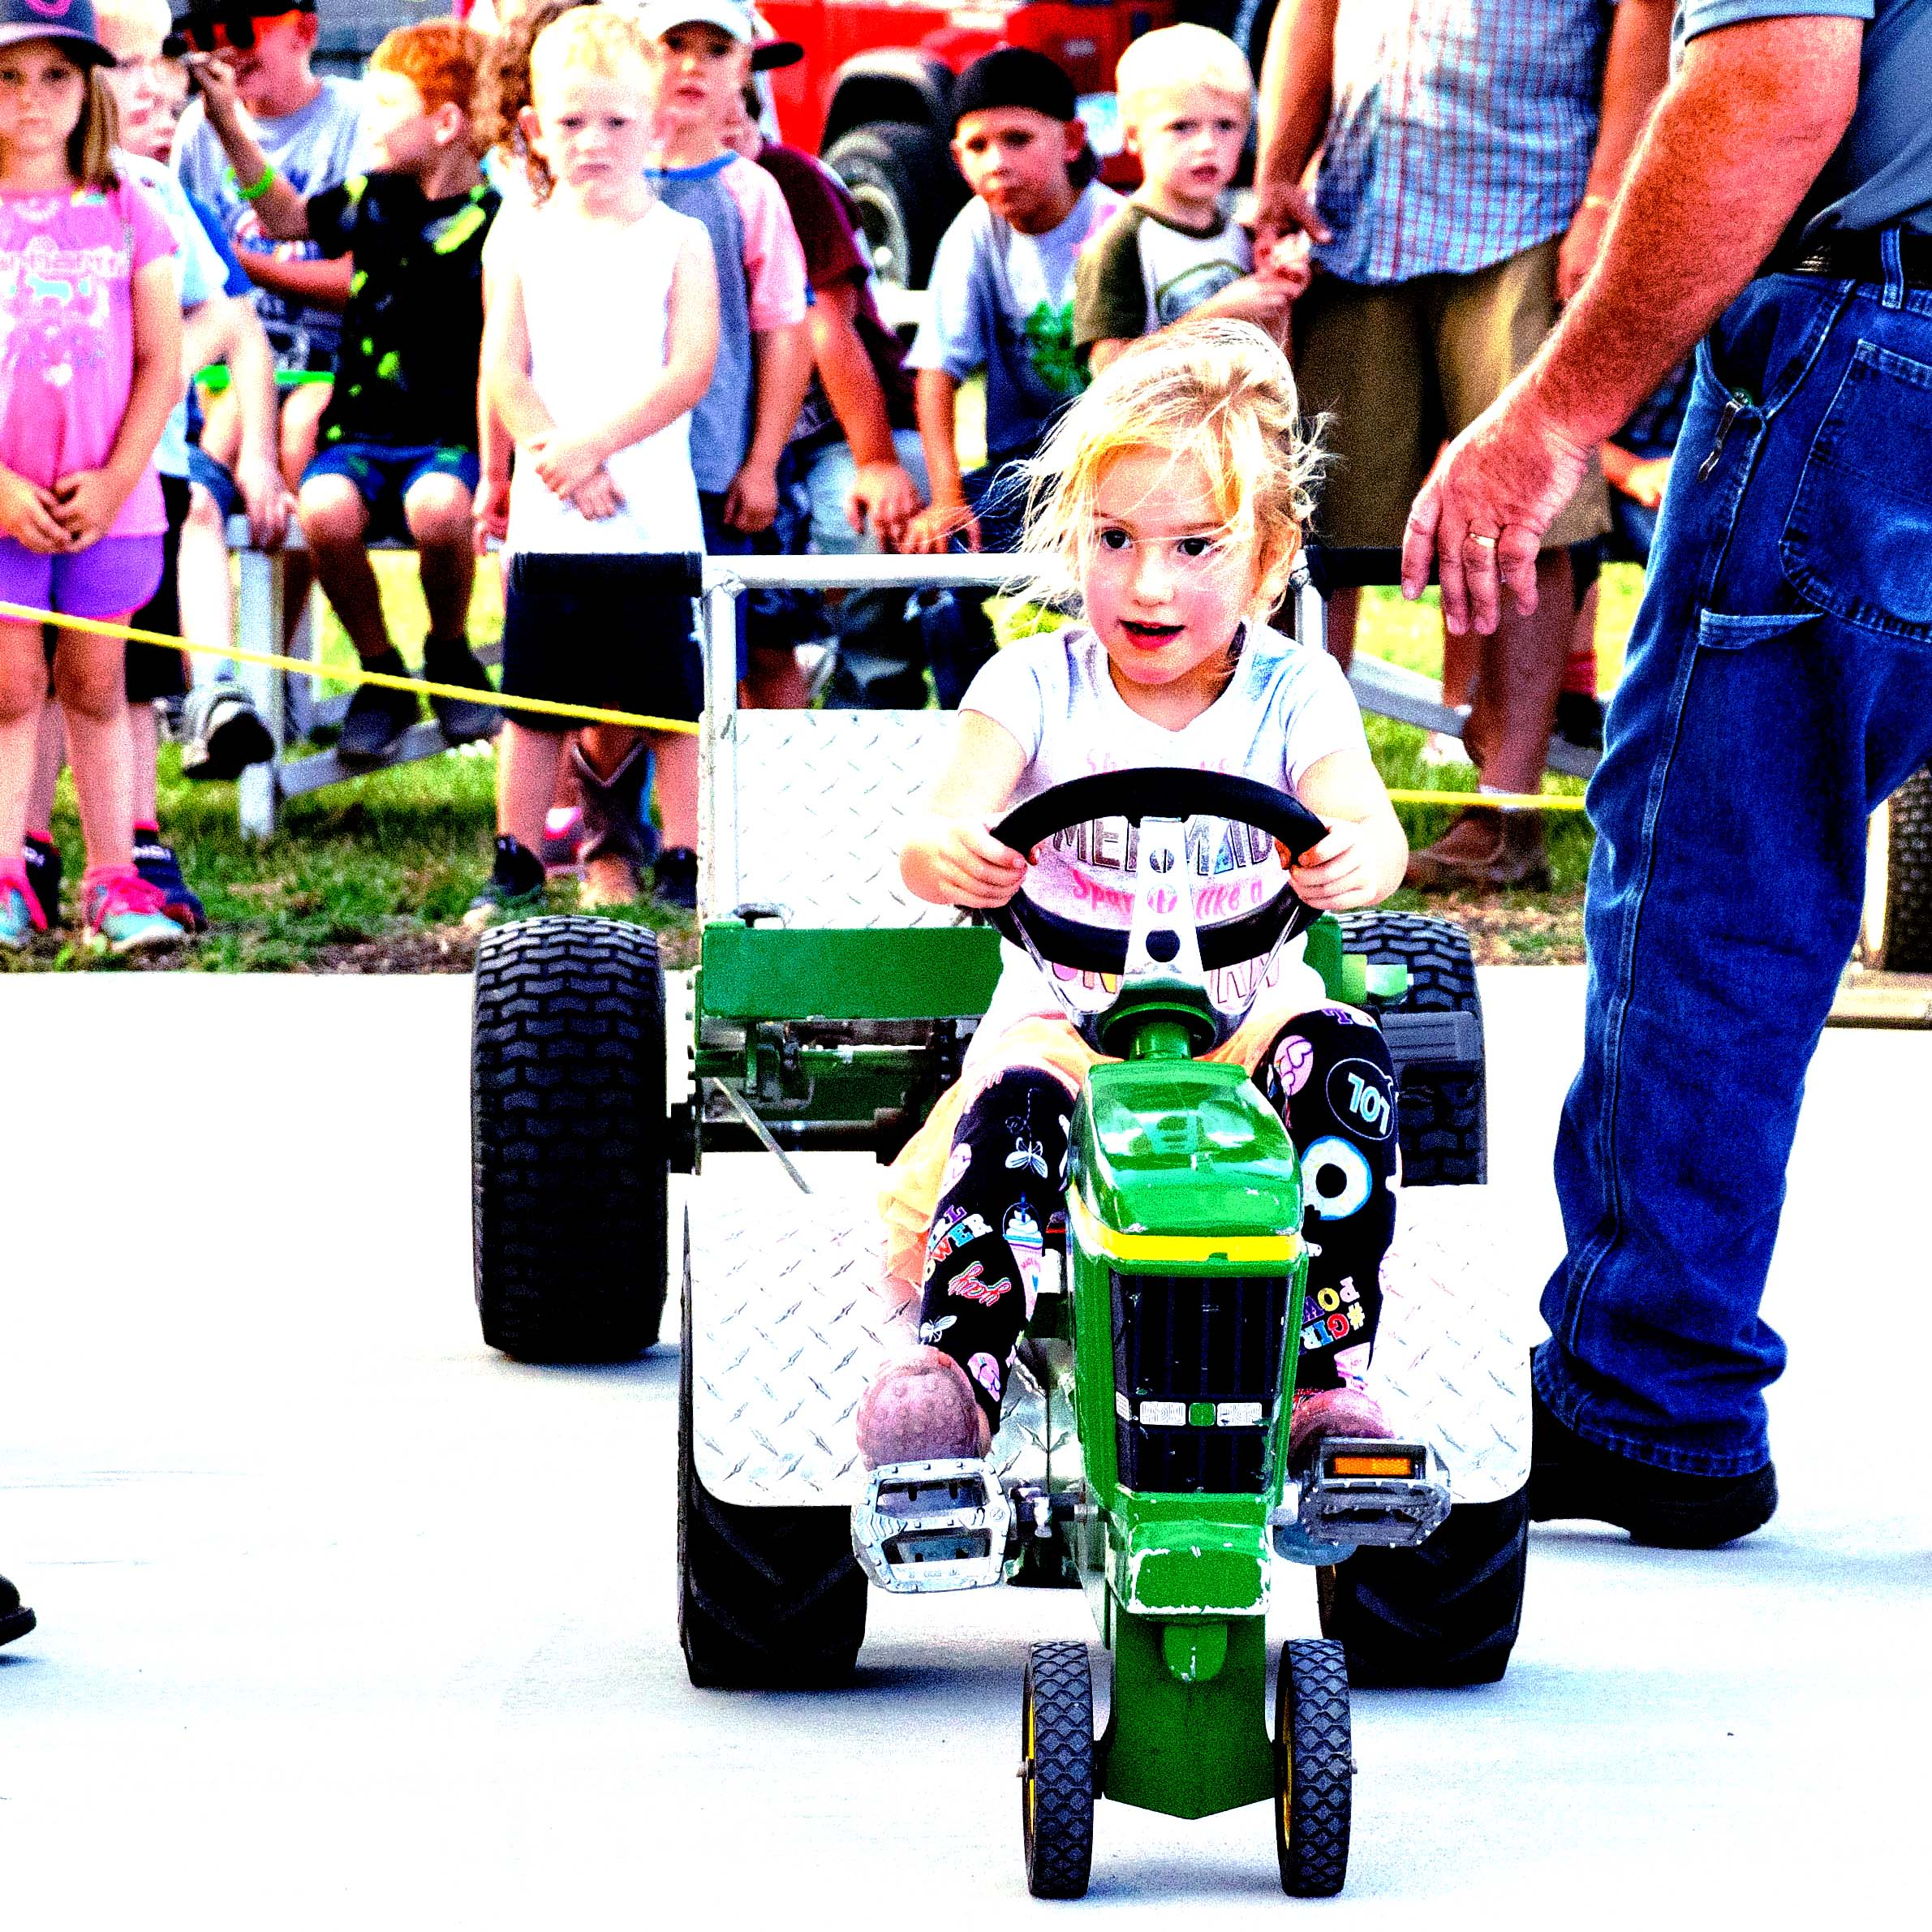 Julie Sinclair (center), Brandi Nowak (1) and the Trojans celebrate a point won in the first round of sub-state tournament play on Saturday against Lyons. The Trojans won the tournament and will be competing this week in the 3A State Volleyball Tournament at White Auditorium in Emporia.